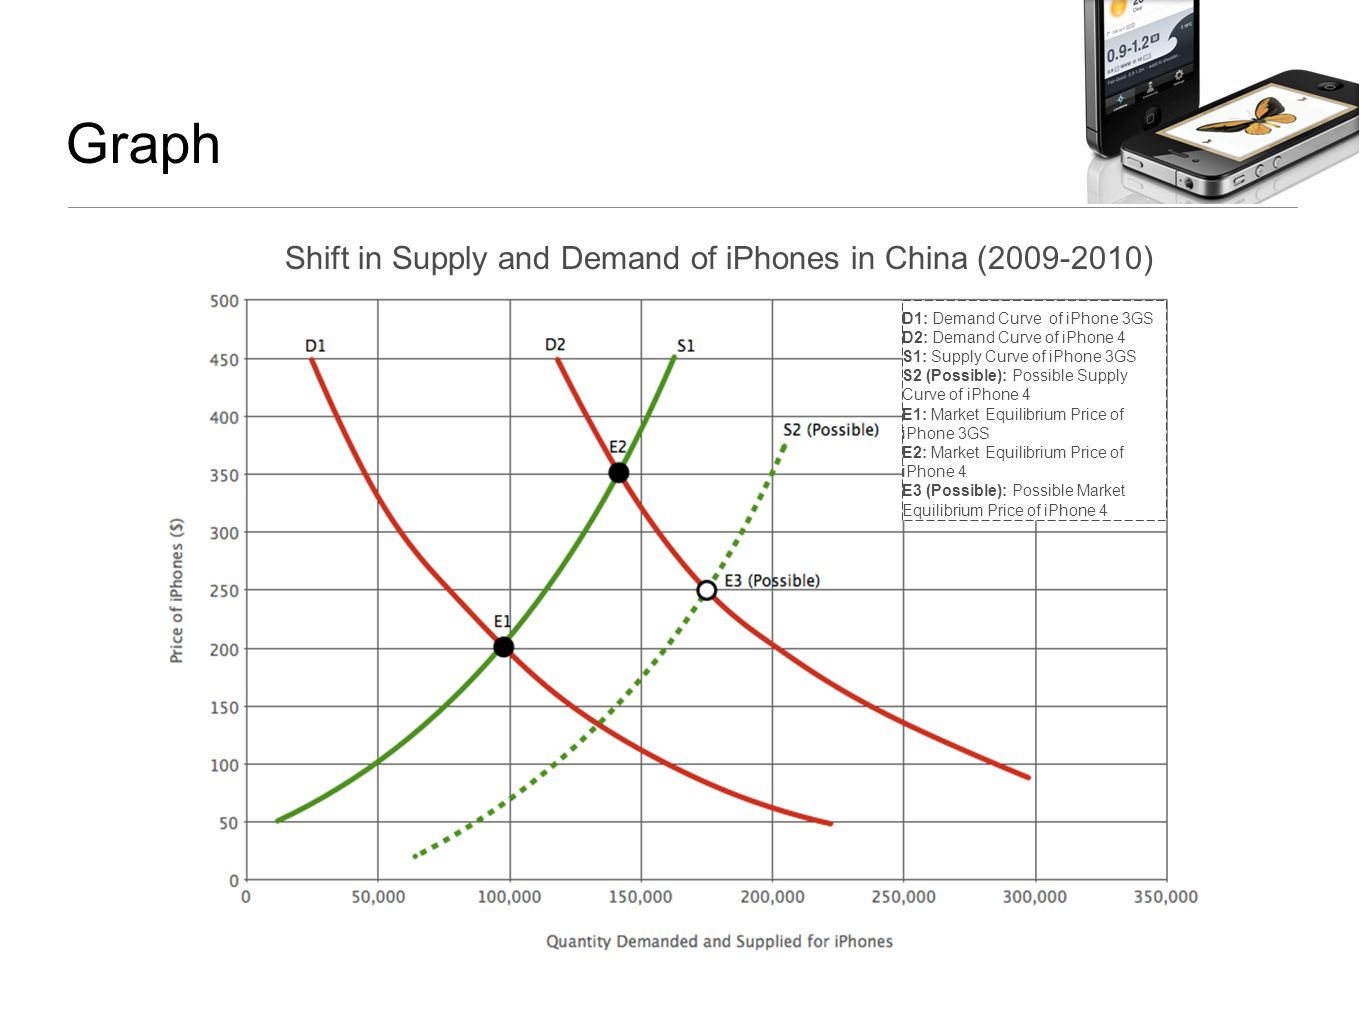 Graph Shift in Supply and Demand of iPhones in China (2009-2010) D1: Demand Curve of iPhone 3GS D2: Demand Curve of iPhone 4 S1: Supply Curve of iPhone 3GS S2 (Possible): Possible Supply Curve of iPhone 4 E1: Market Equilibrium Price of iPhone 3GS E2: Market Equilibrium Price of iPhone 4 E3 (Possible): Possible Market Equilibrium Price of iPhone 4